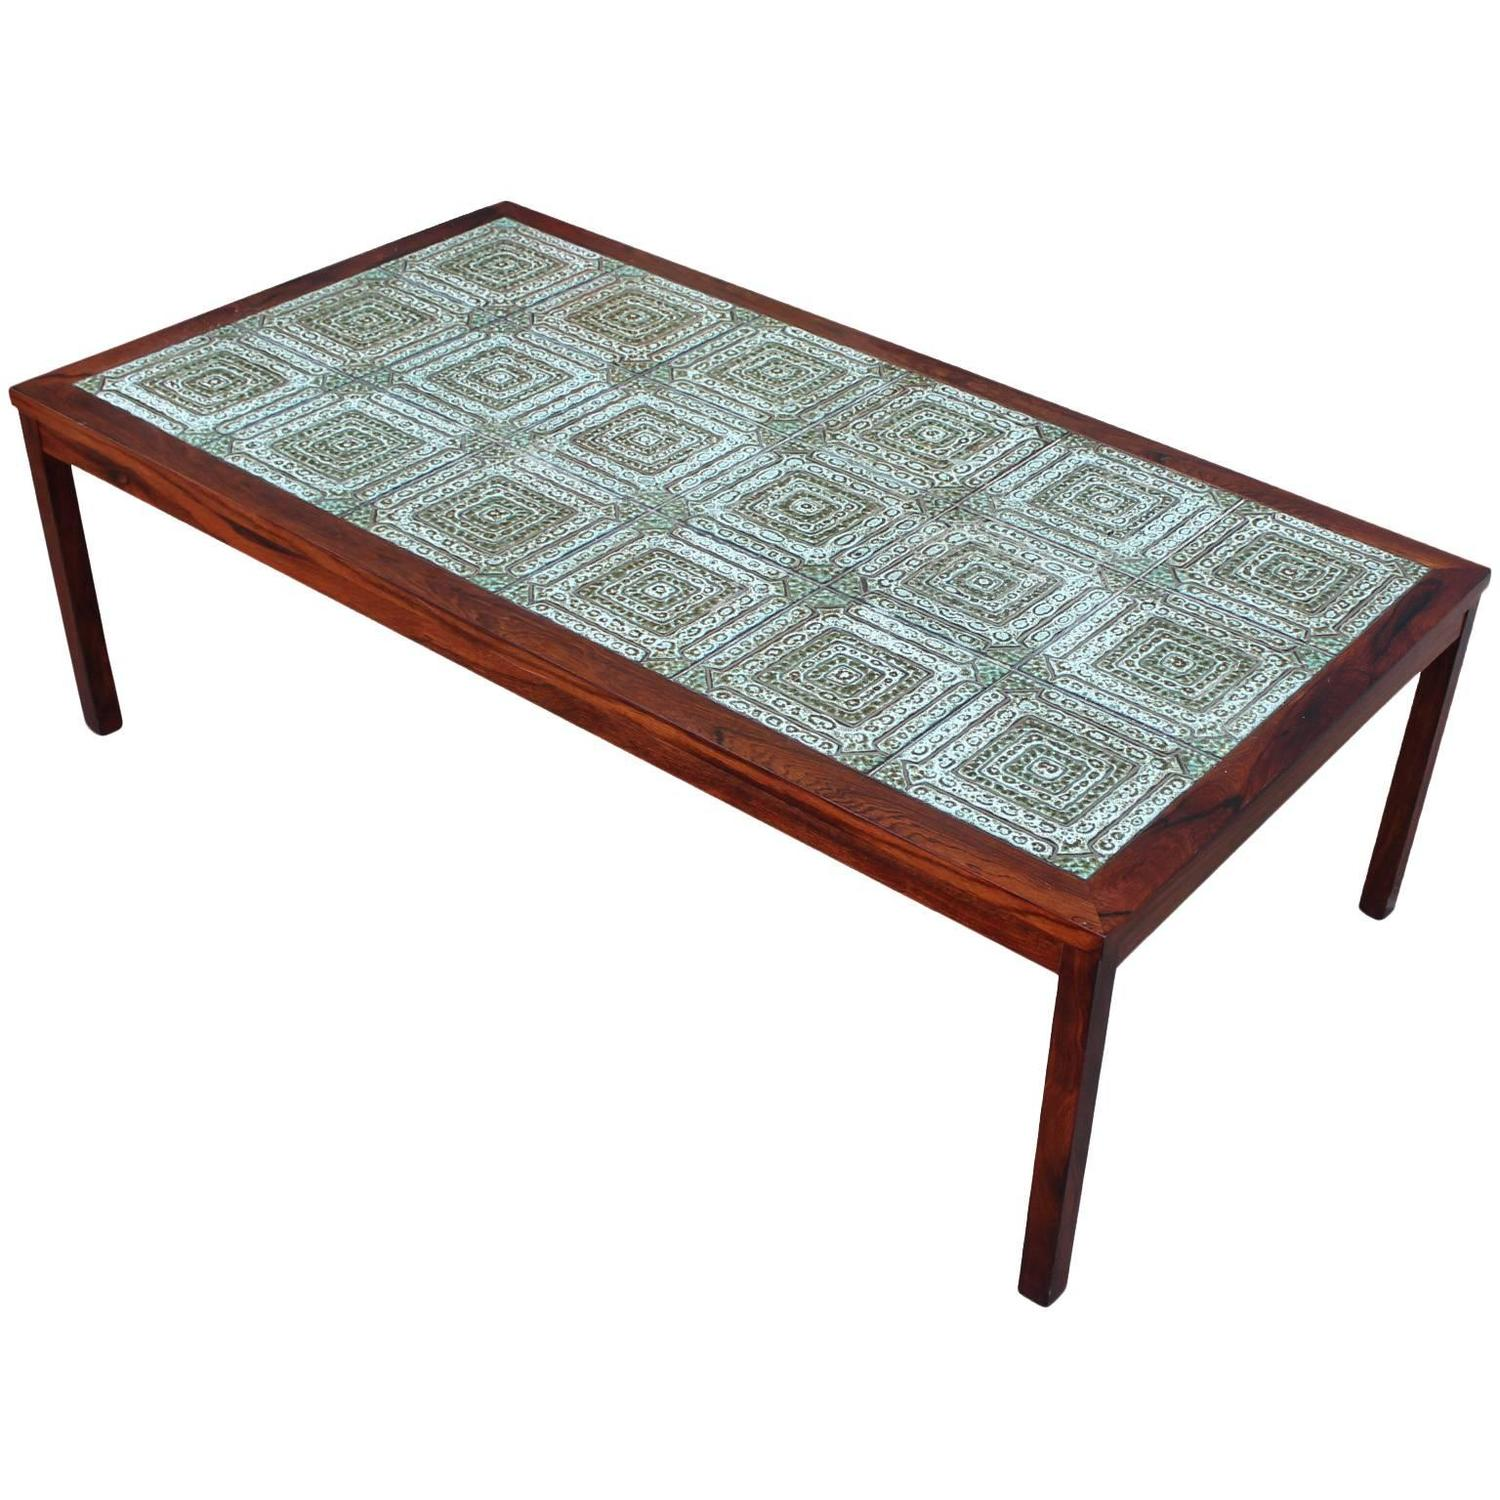 Excellent Danish Tile and Rosewood Coffee Table at 1stdibs